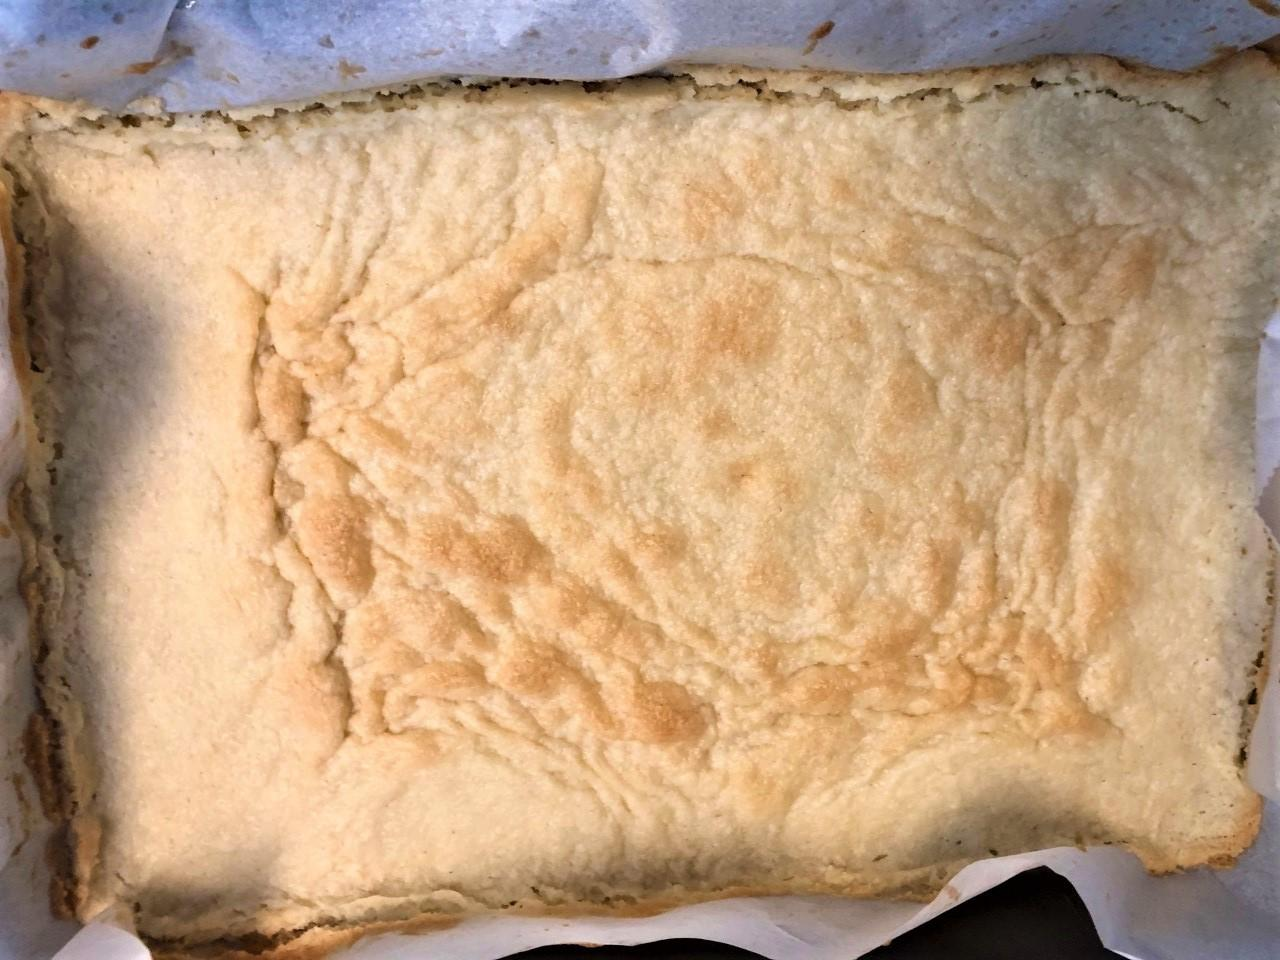 Image of Lemon Bar bottom crust, baked